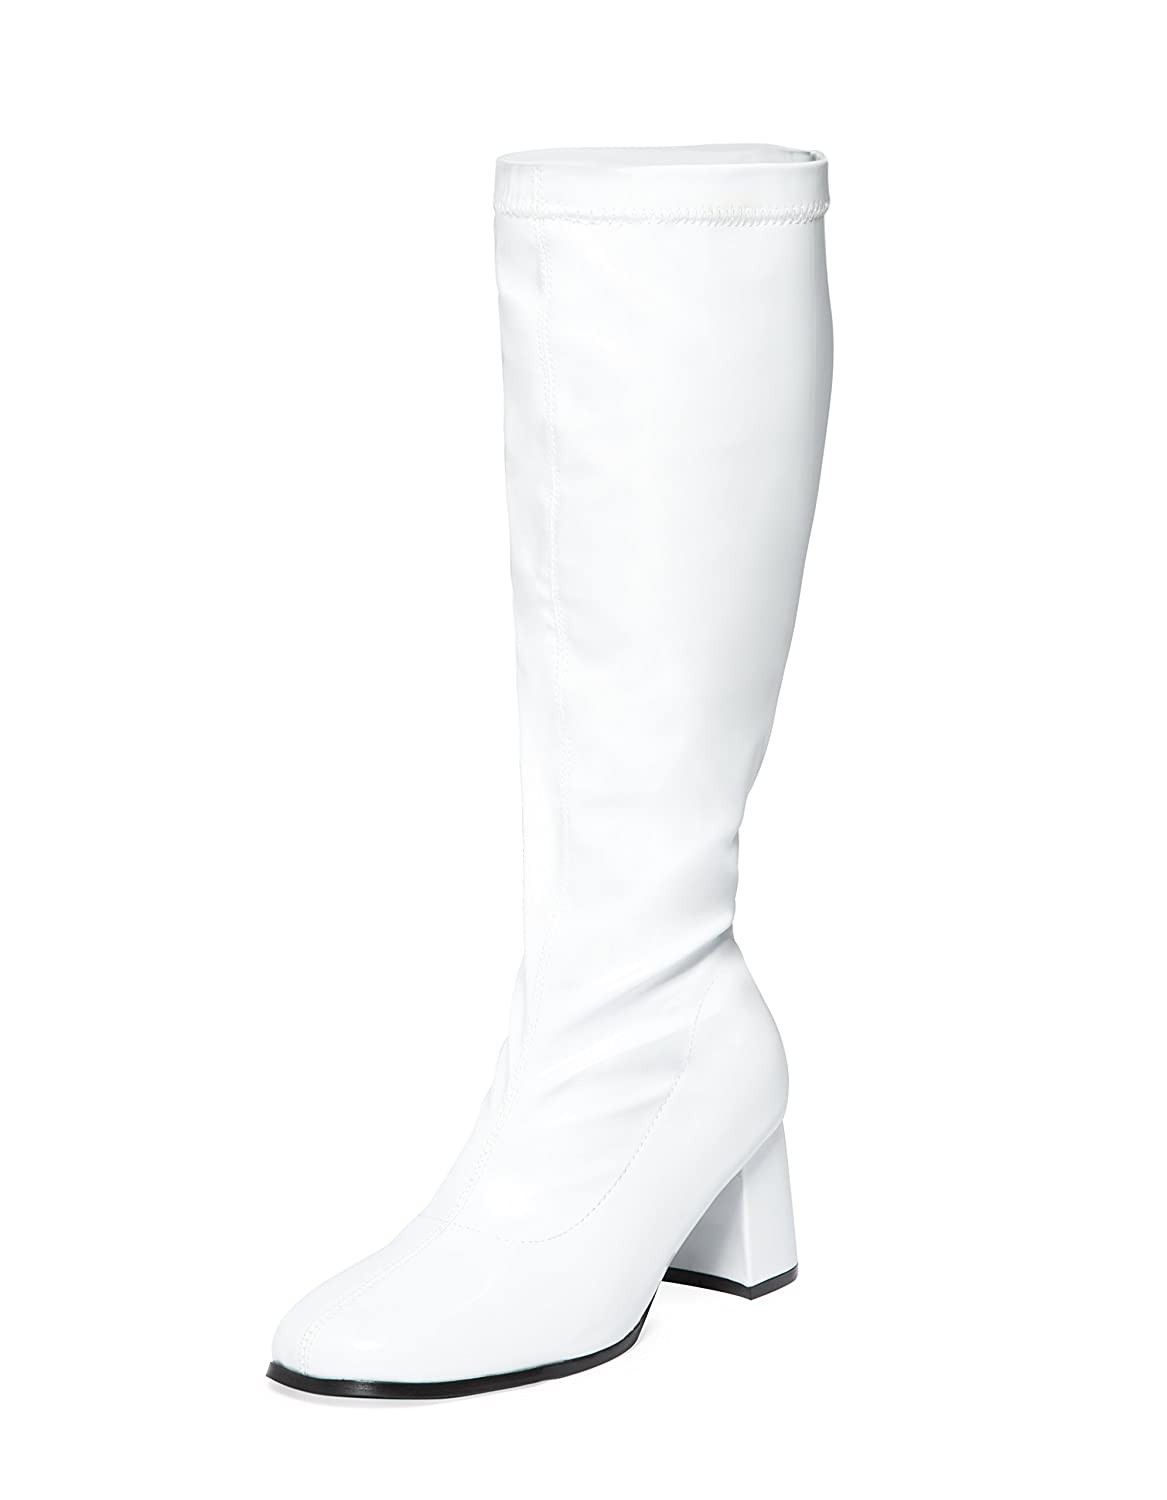 sexyca ladies womens fancy dress party go go boots 60s 70s retro 1970 Men's Shoes white knee high go go boots sizes 3 uk to 11 uk